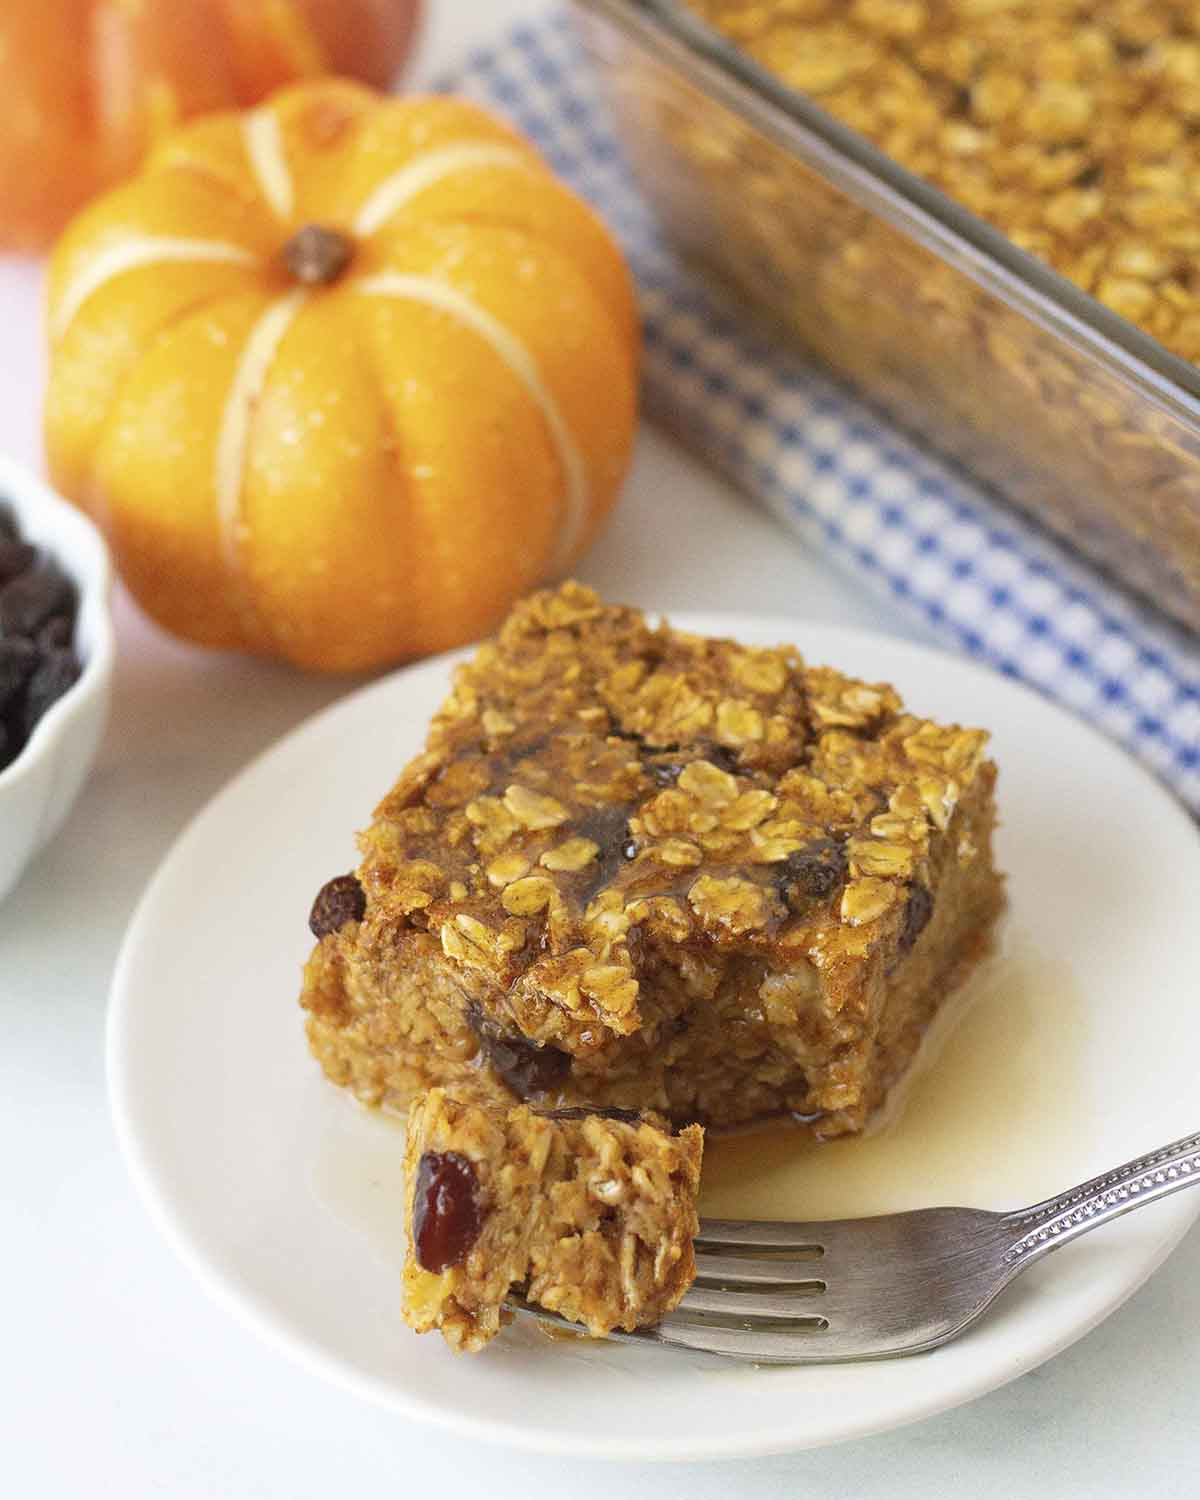 A square of pumpkin pie baked oatmeal on a white plate, a piece of the oatmeal is on a fork, the fork in on the plate.